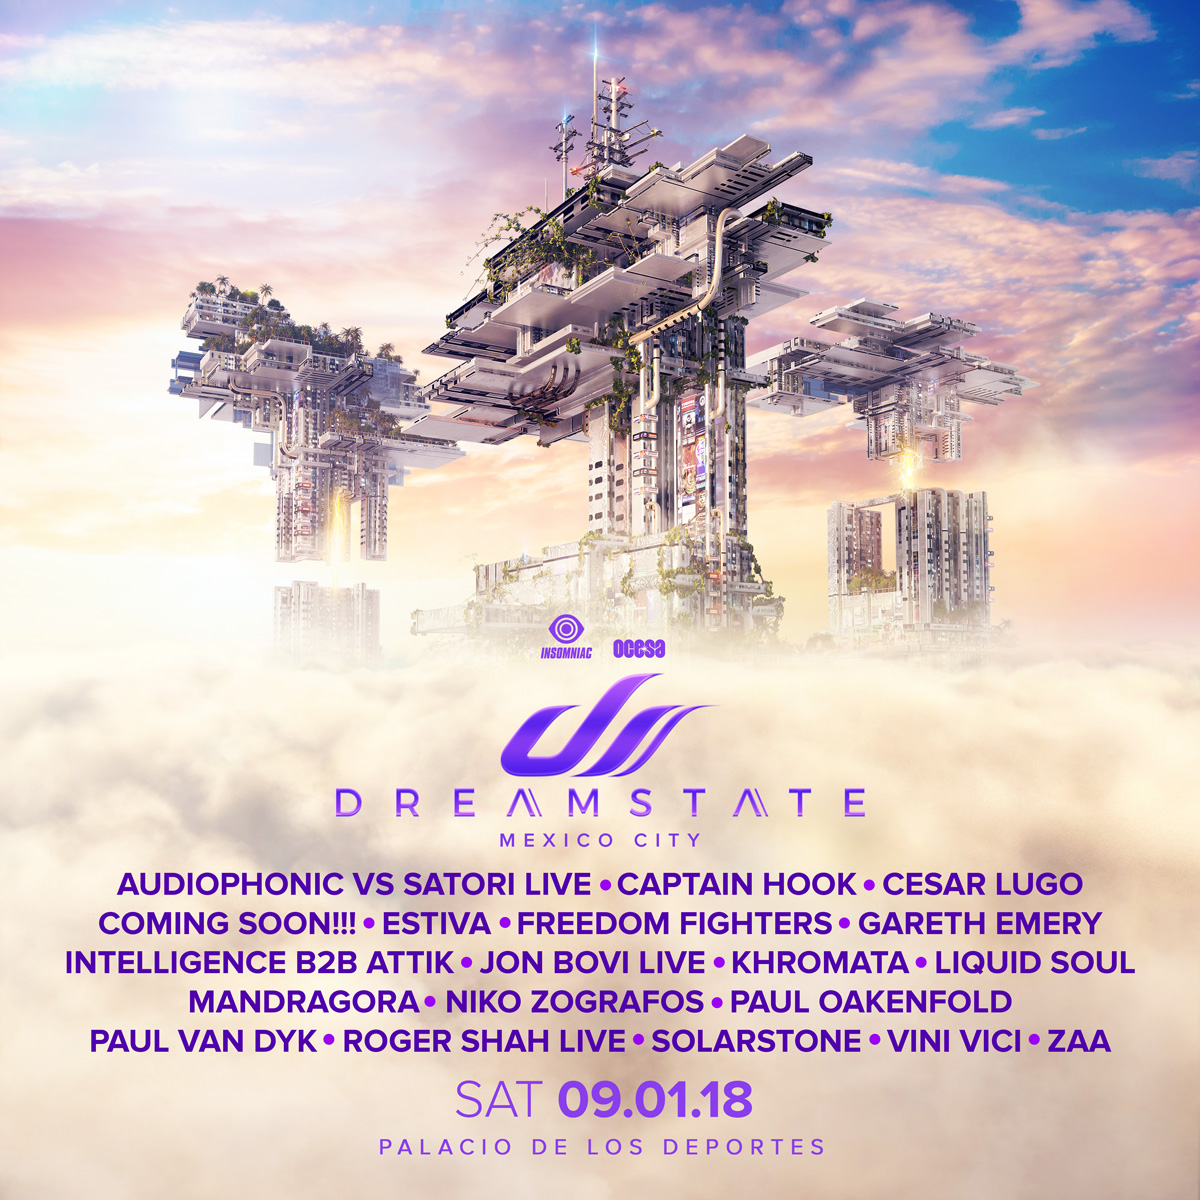 Dreamstate Mexico